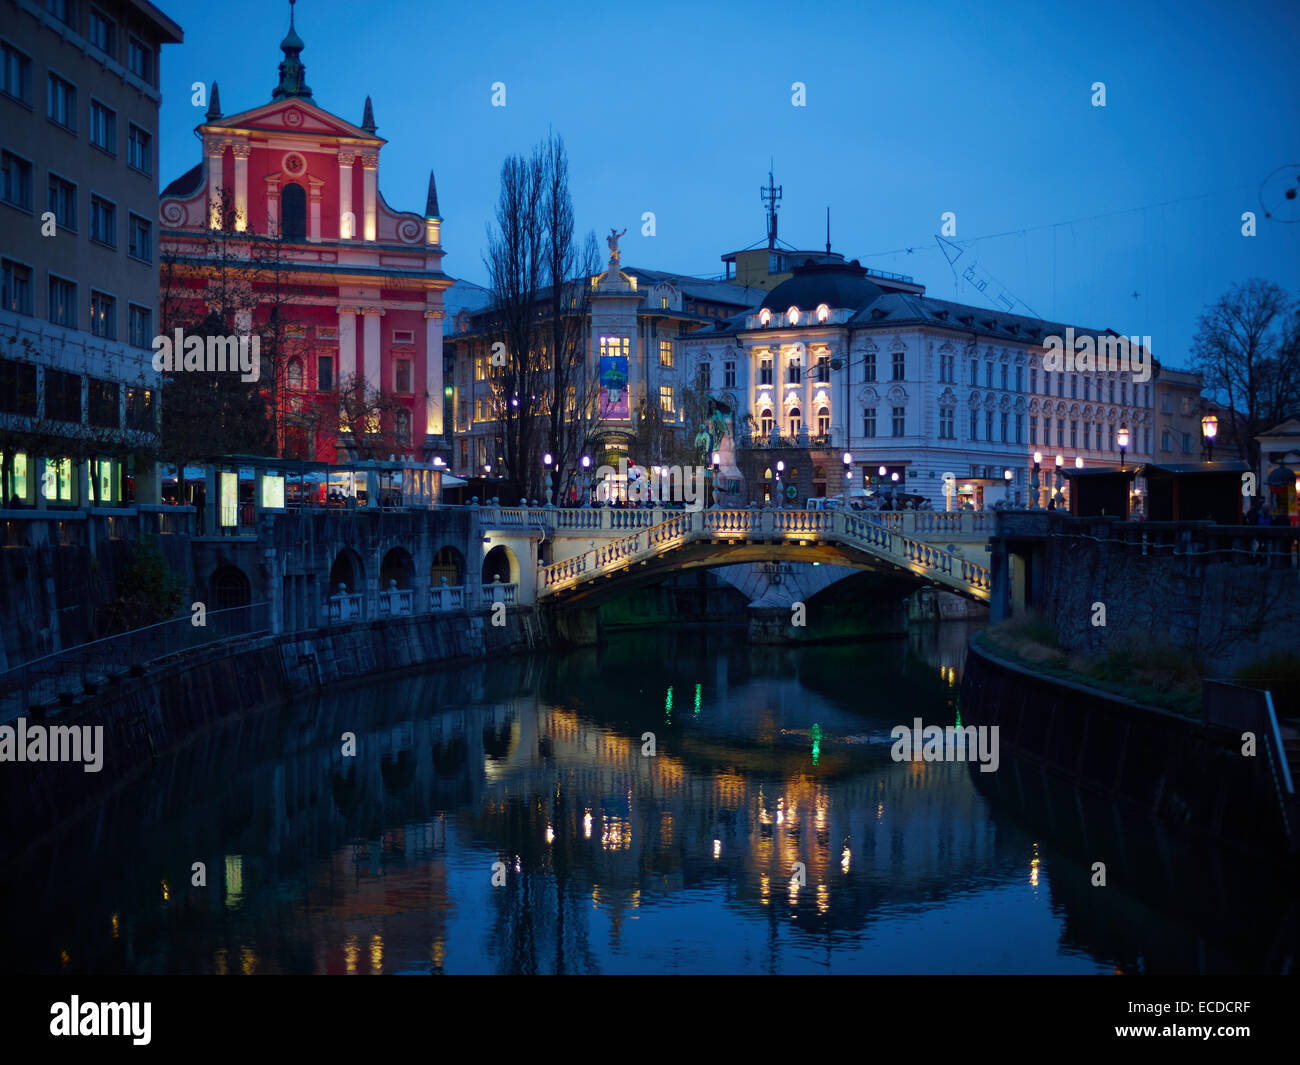 The Triple Bridge is probably the most  beautiful, unusual and well known of all bridges in Ljubljana, Slovenia - Stock Image